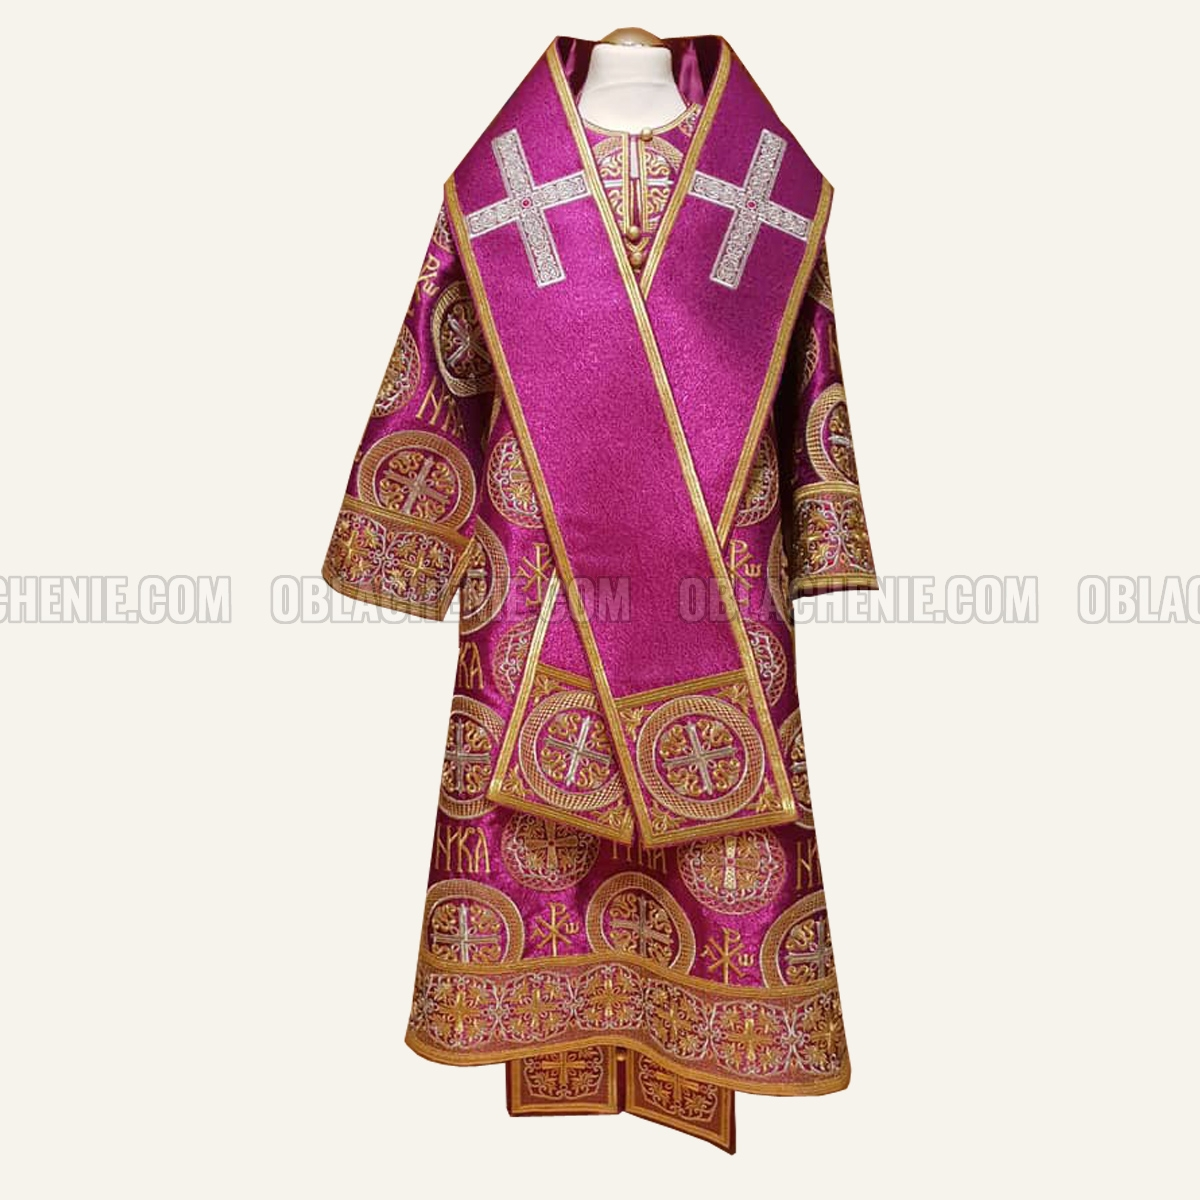 Bishop's embroidered vestments 10272